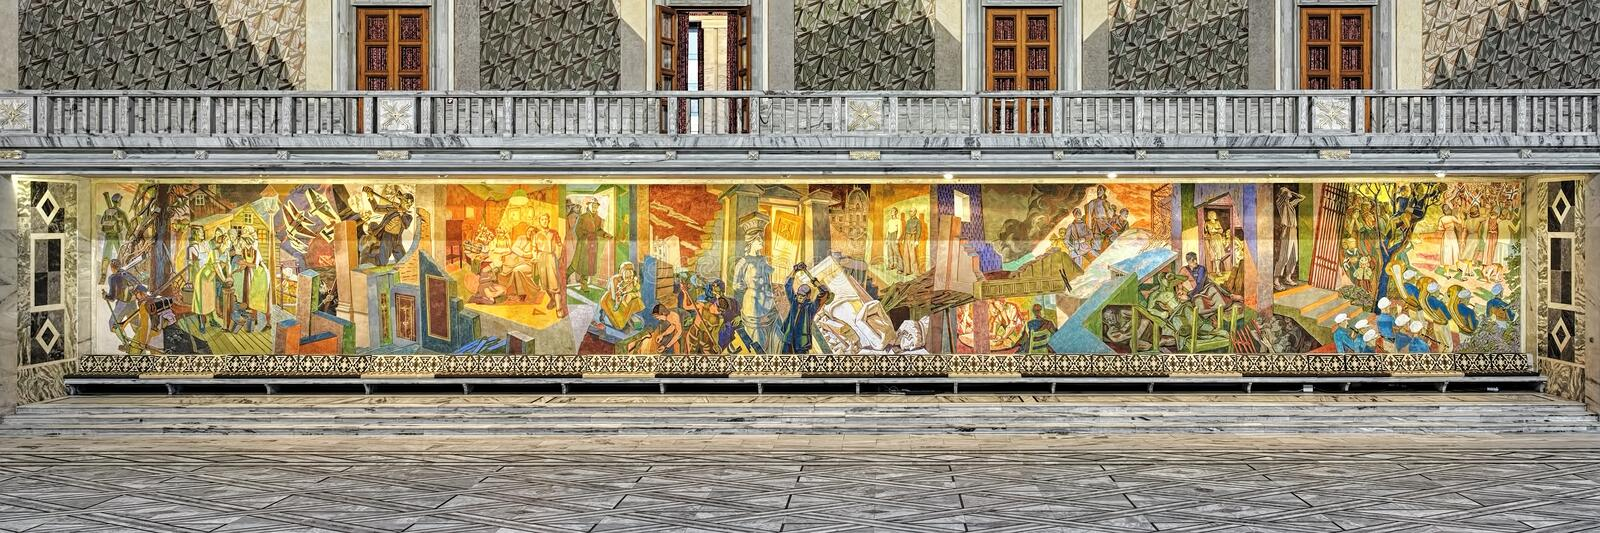 The Occupation Frieze on the east wall of Main Hall in Oslo City Hall, Norway royalty free stock photography